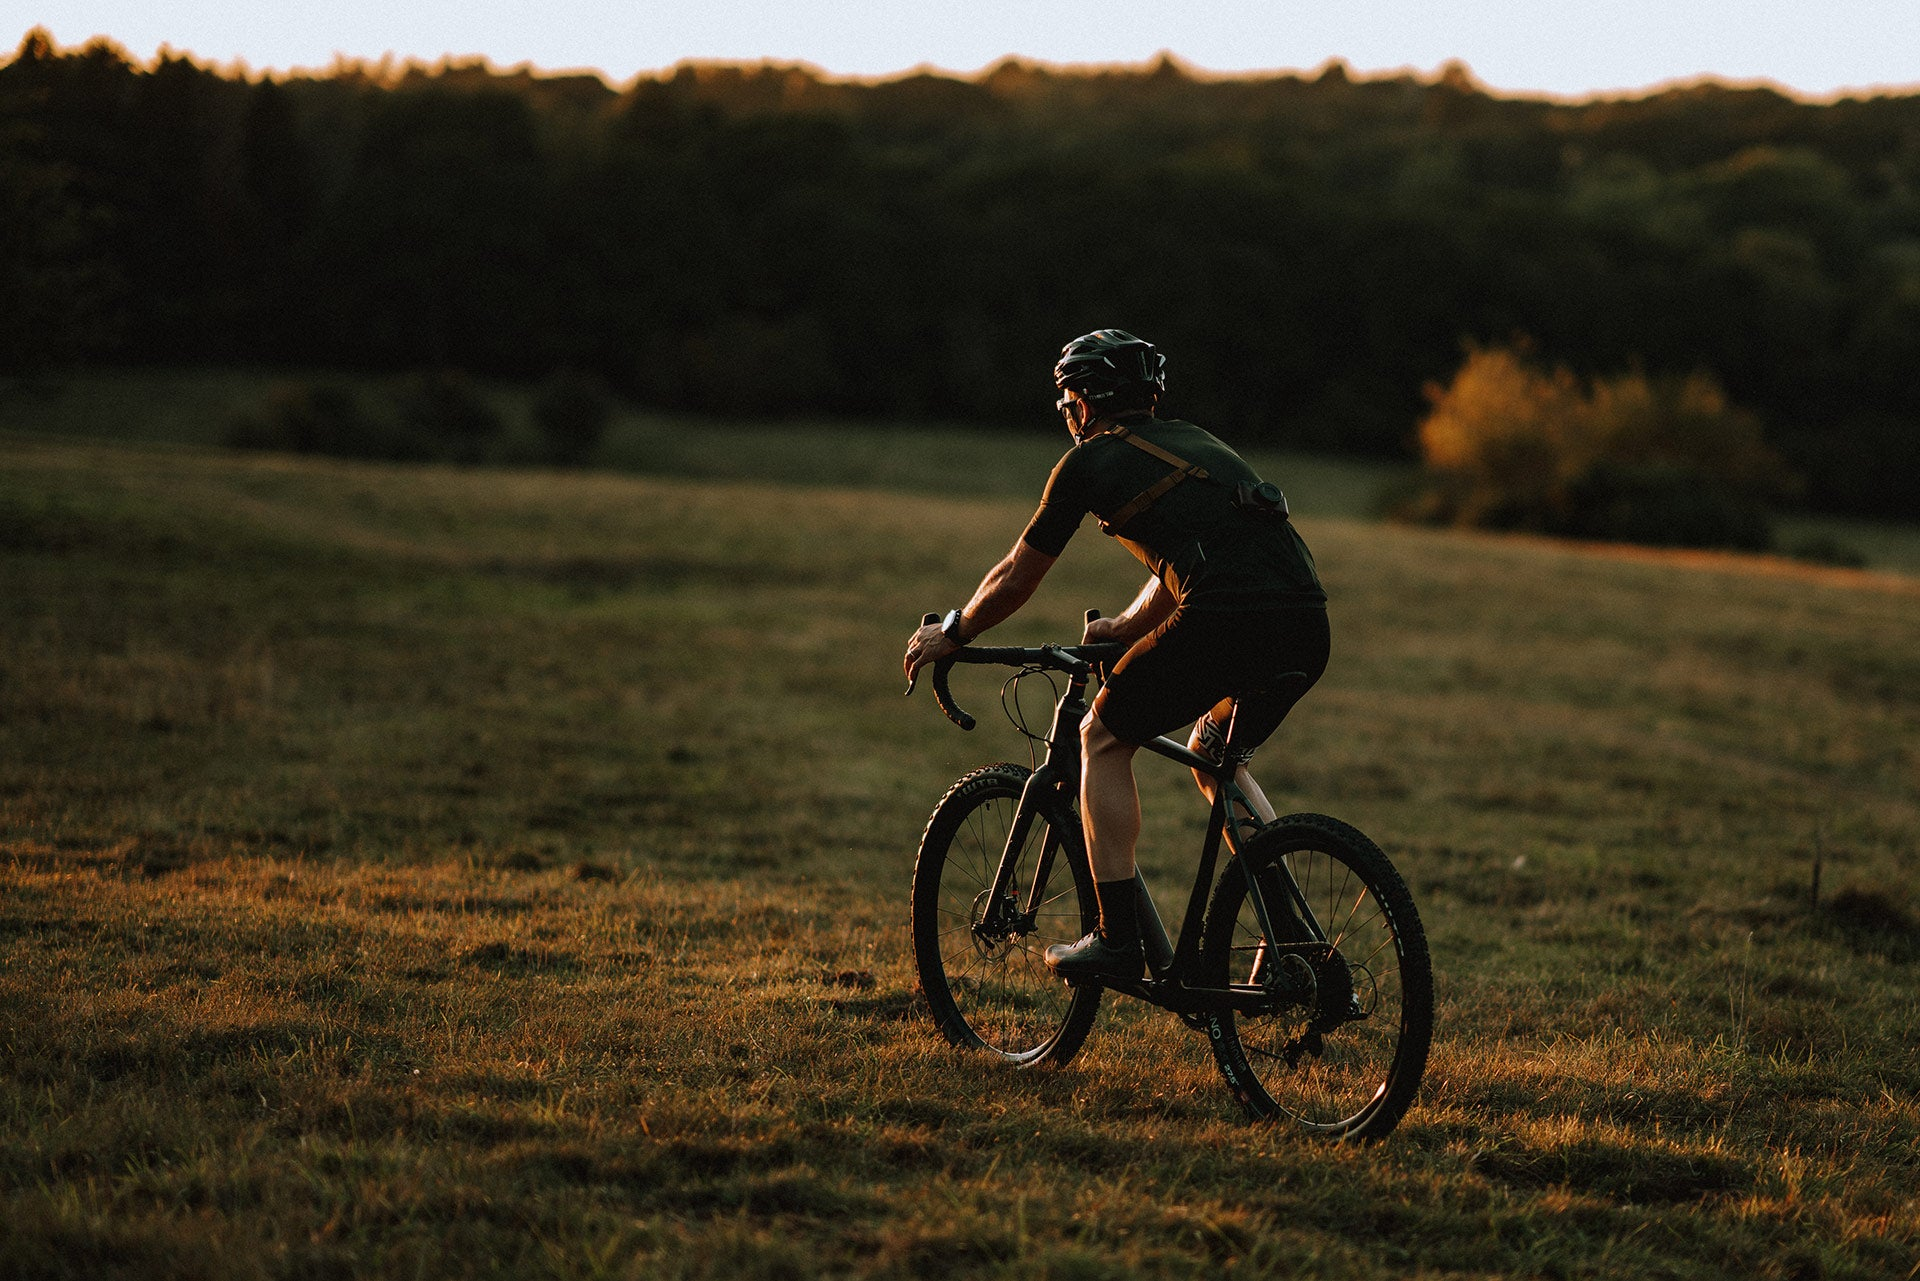 Sony RX100 - a great choice for on-bike photography